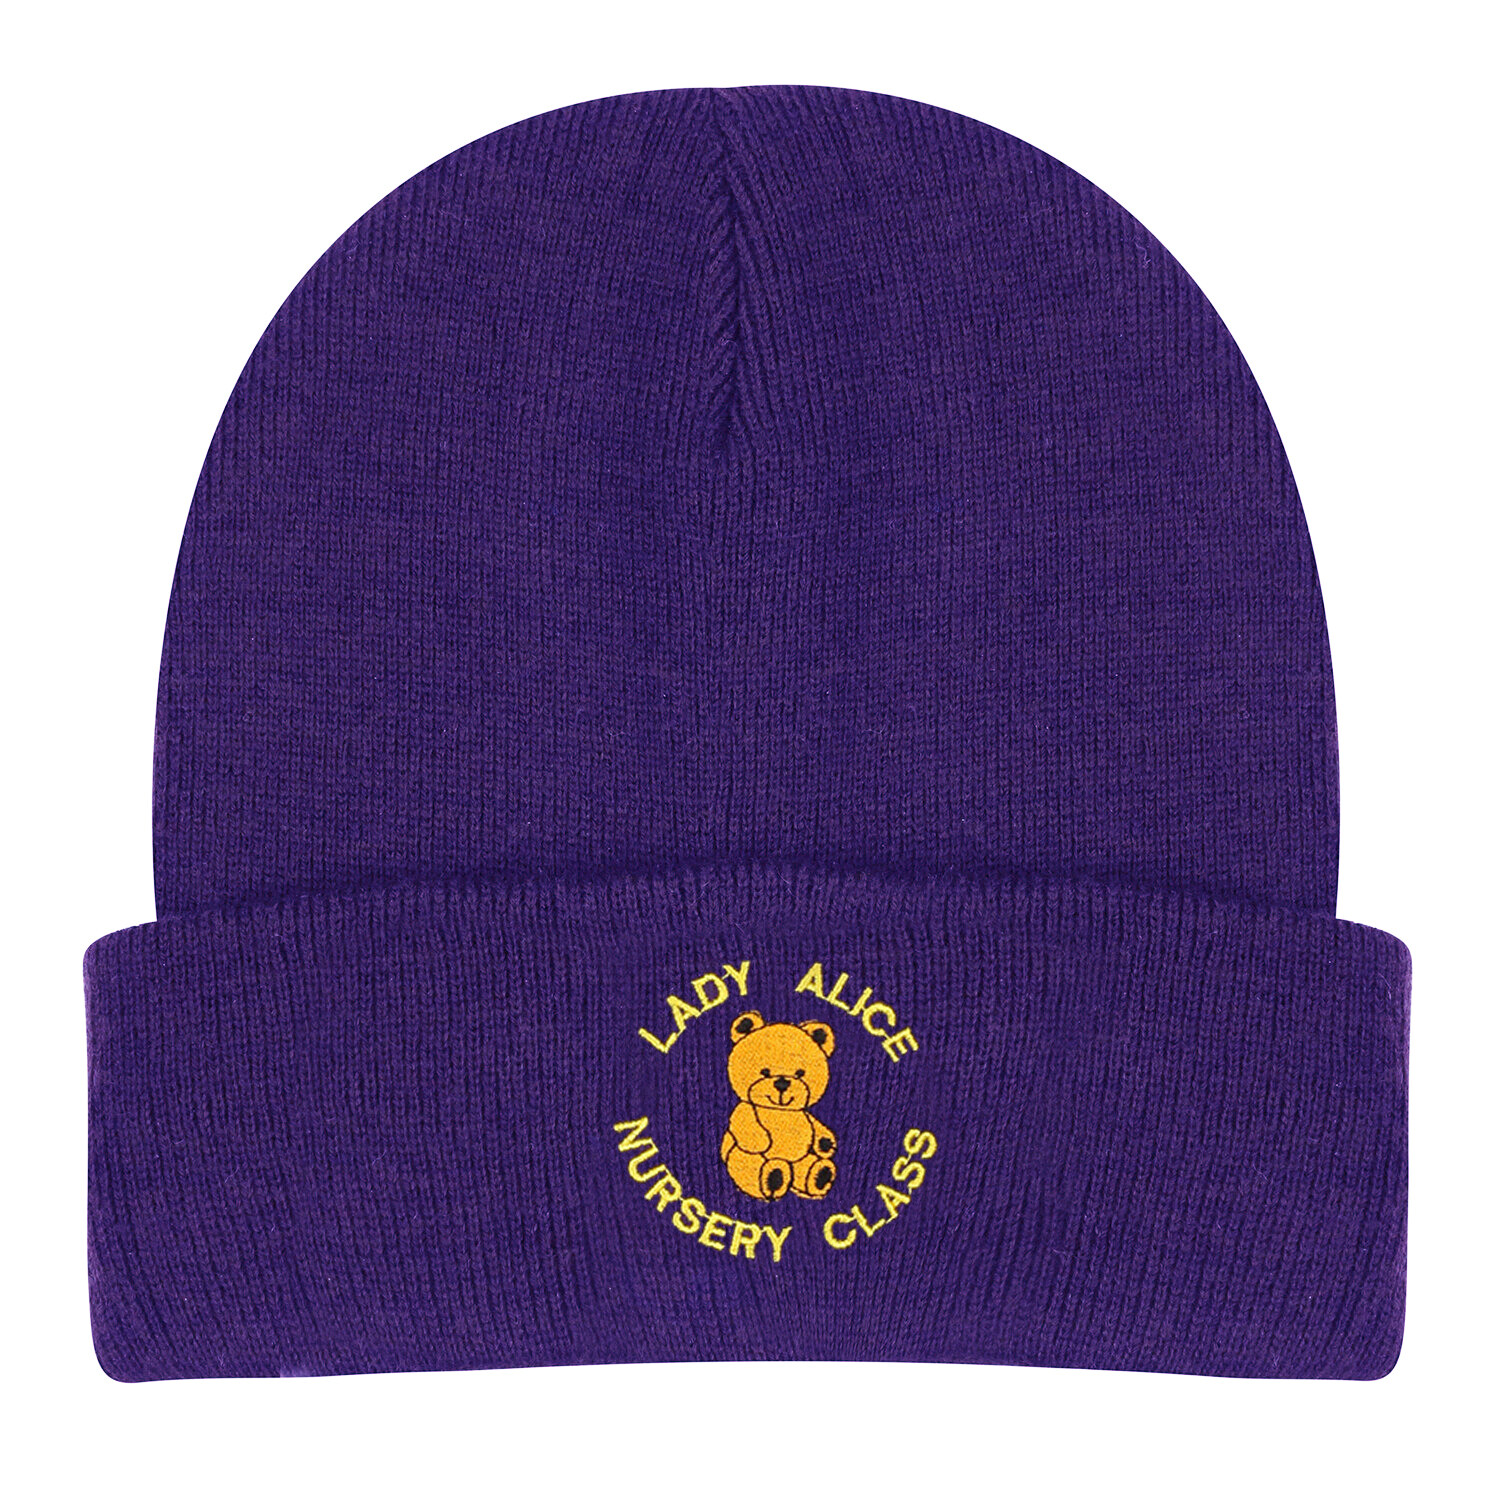 Lady Alice Nursery Wooly Hat